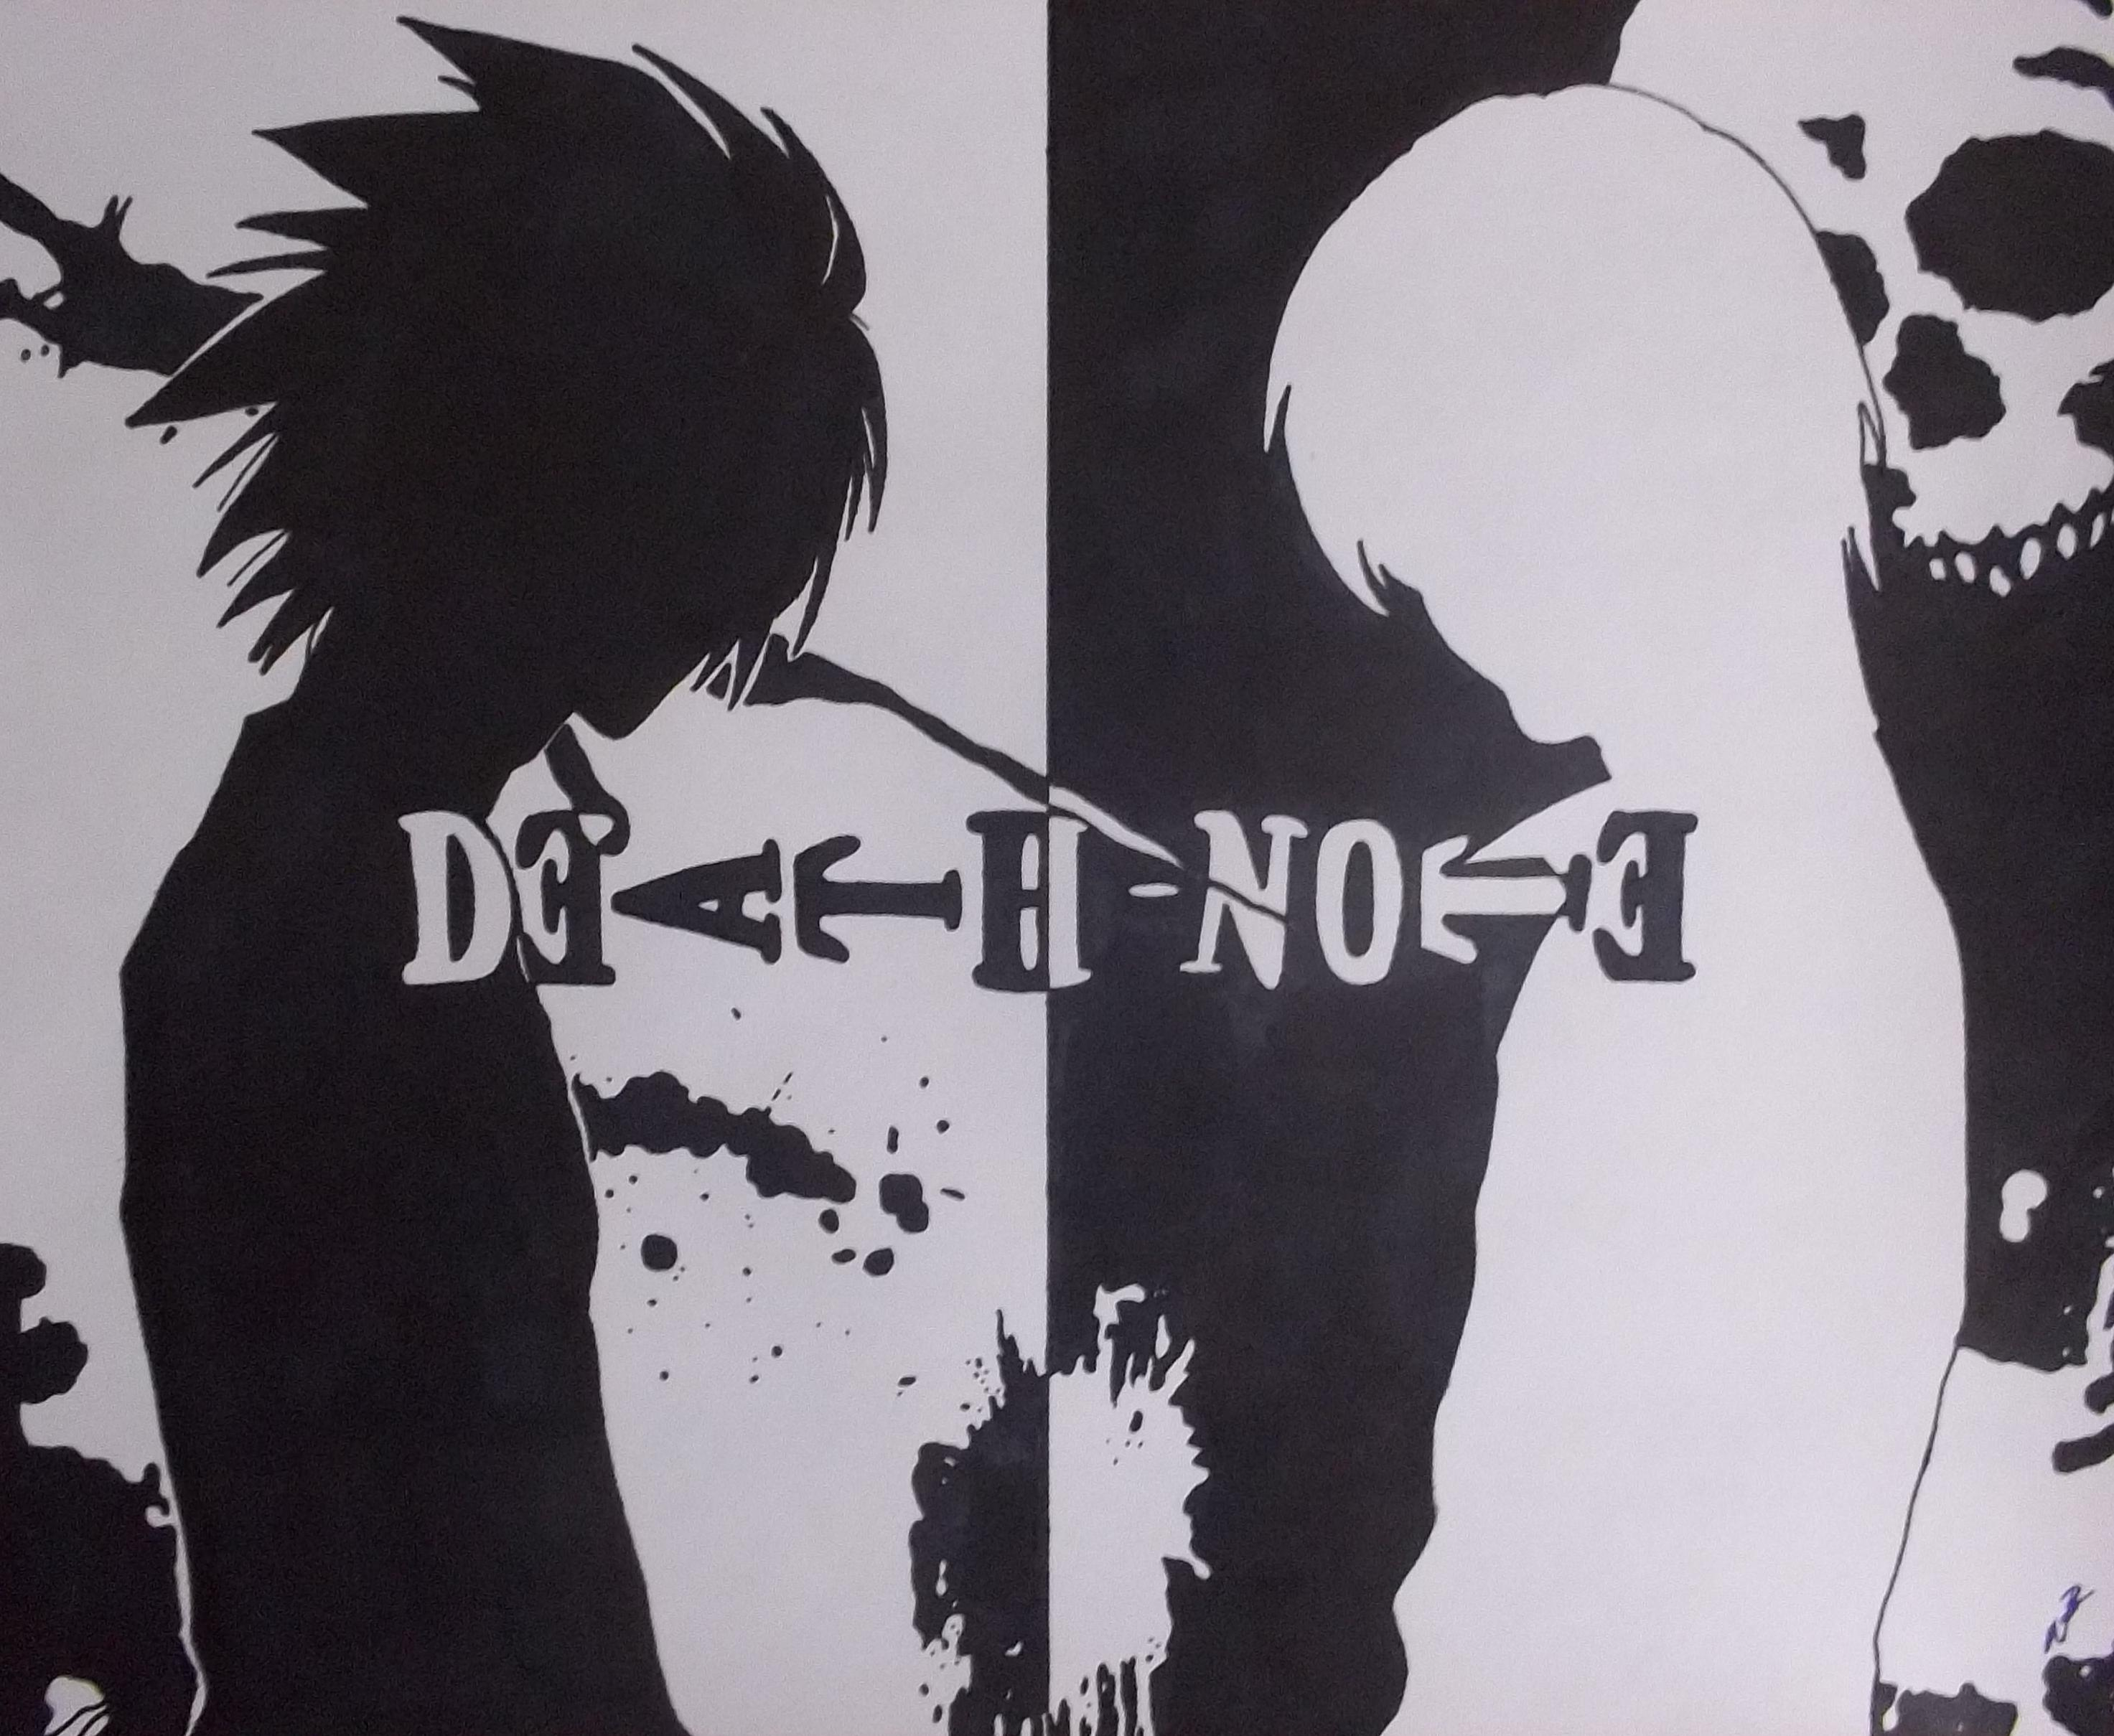 bdn archive � death note � movie review fantasia hearth